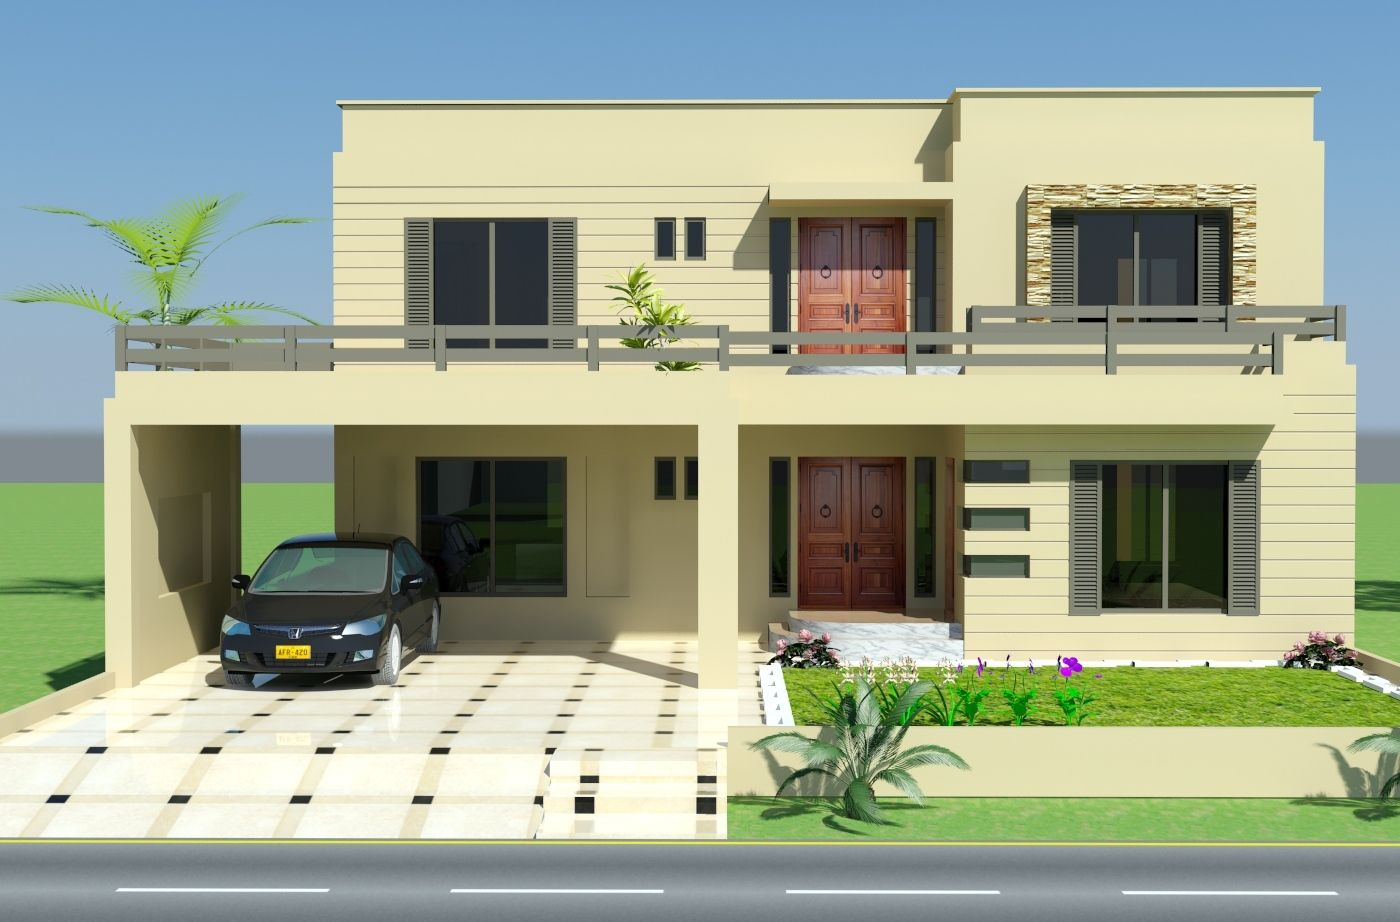 Exterior house design front elevation mi futura casa for House outside design ideas